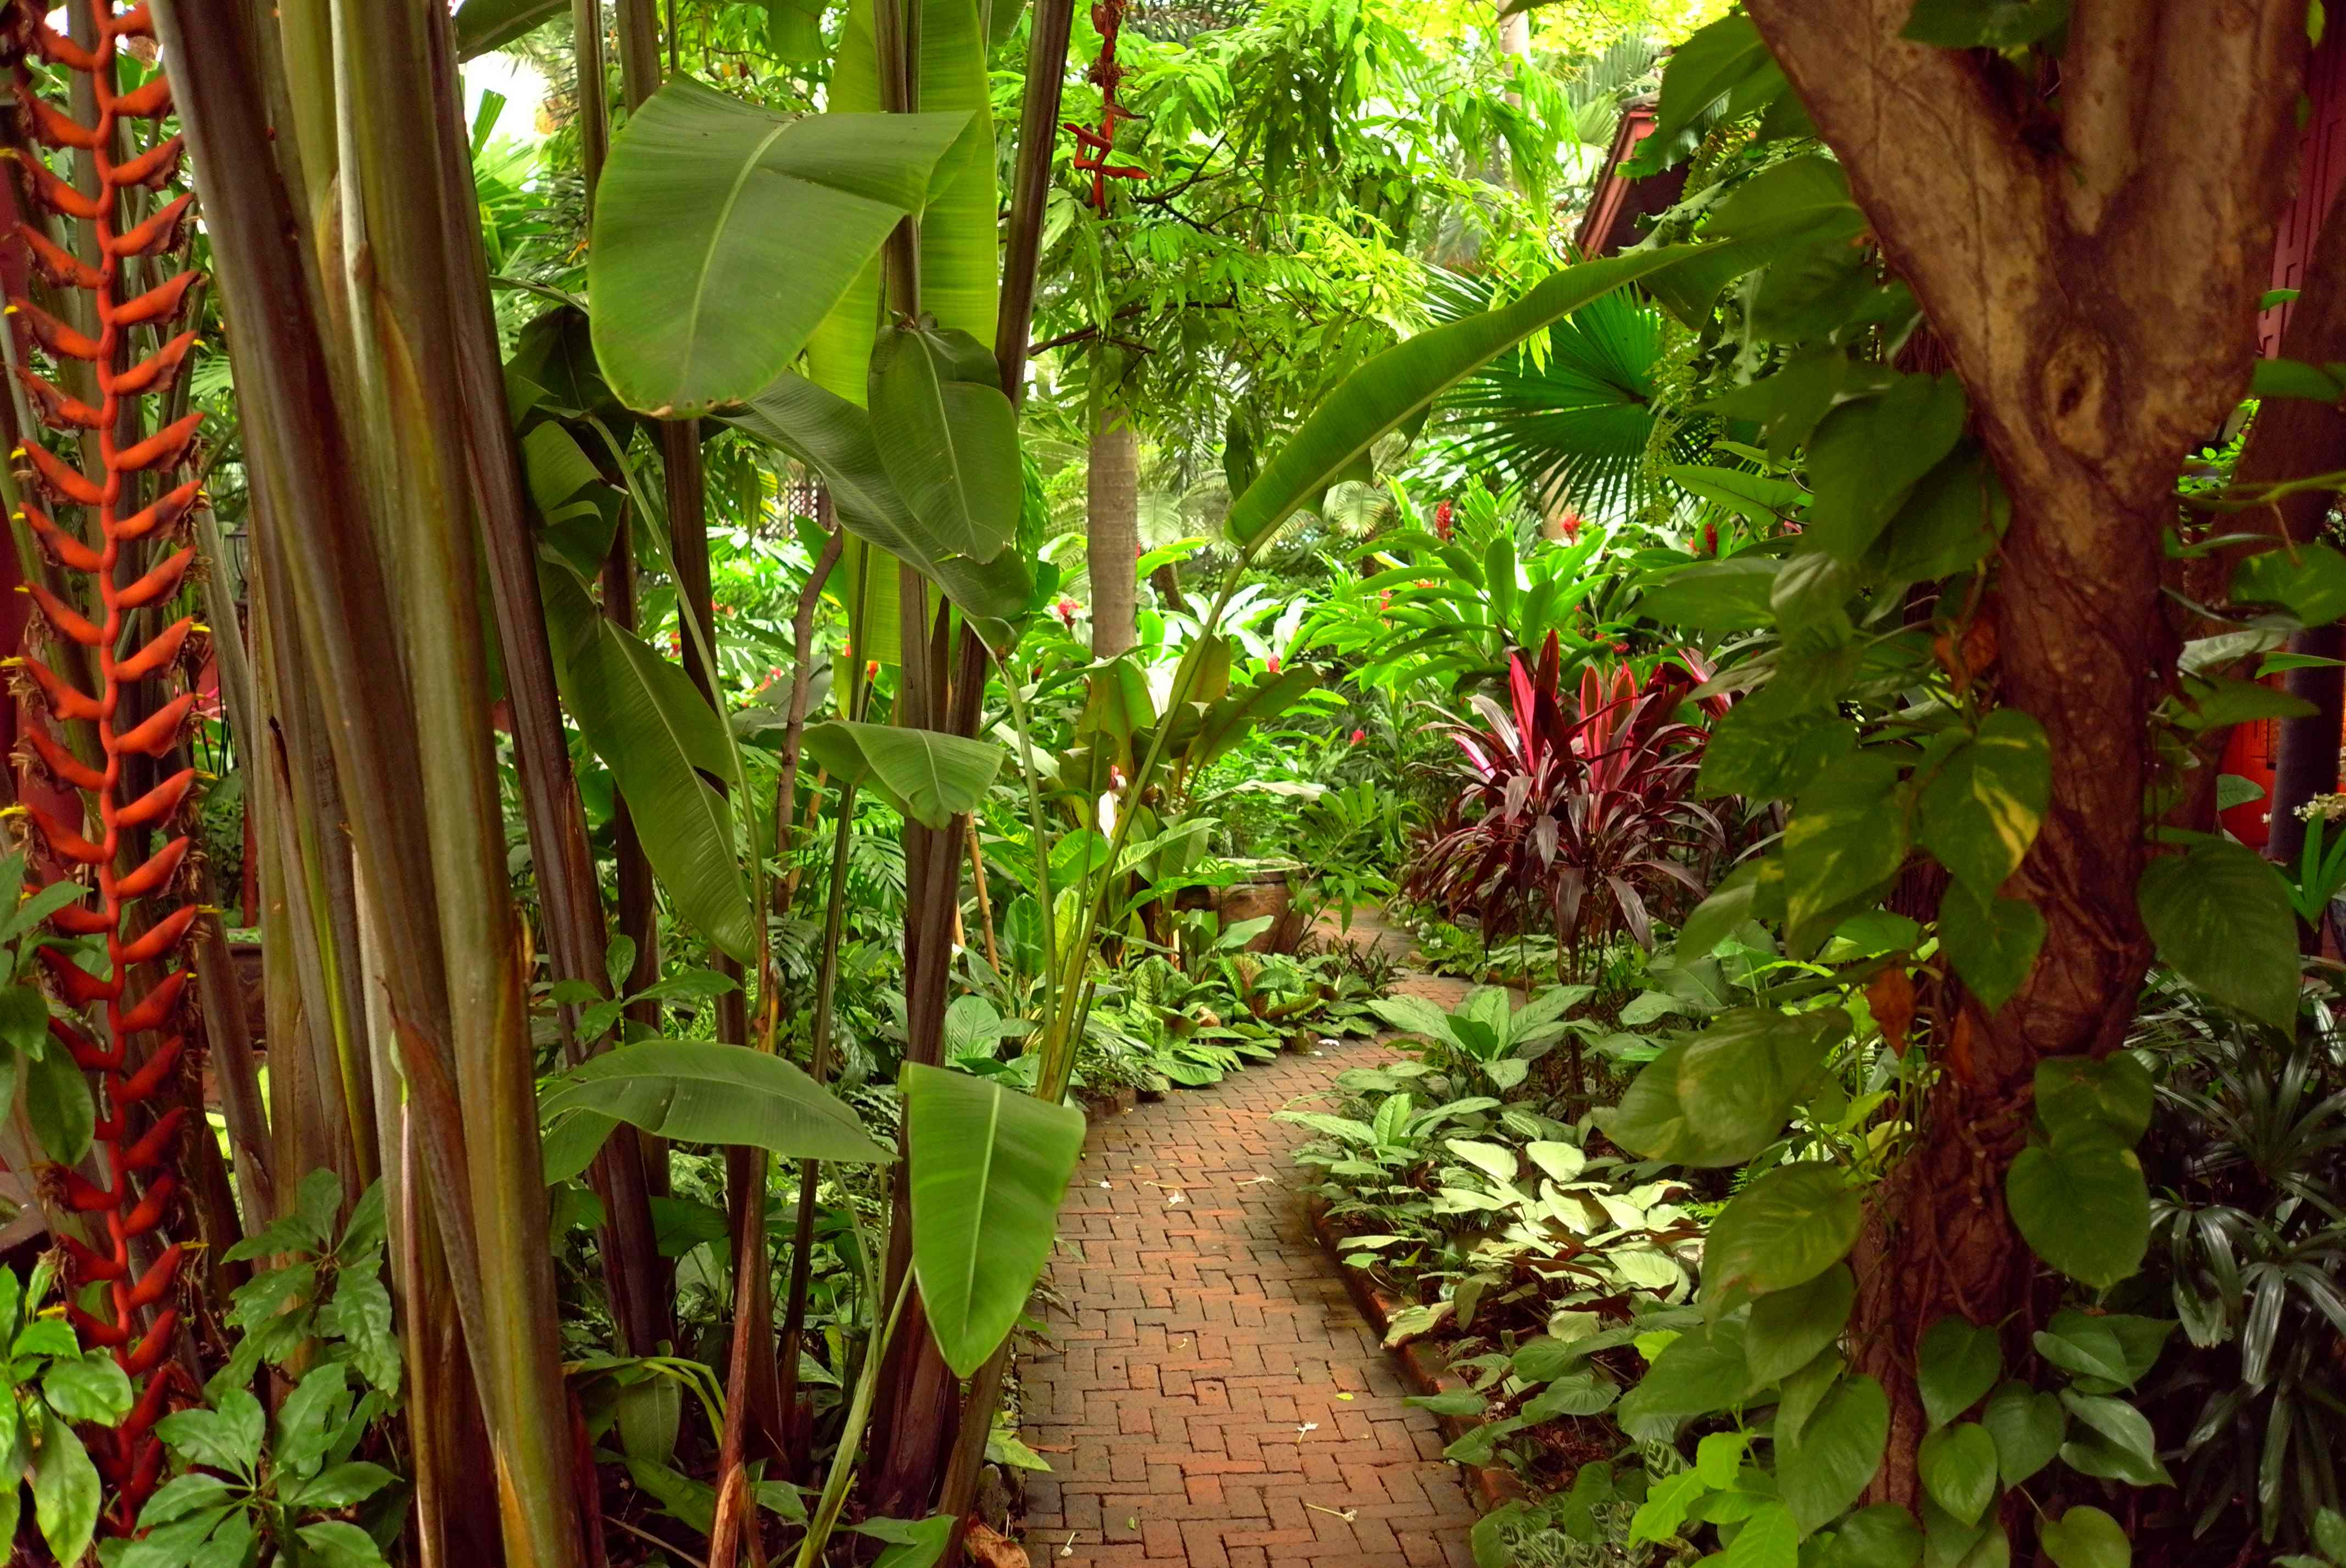 A detail of the lush tropical garden surrounding the home and buildings (Photo Catherine Clover, 2013)